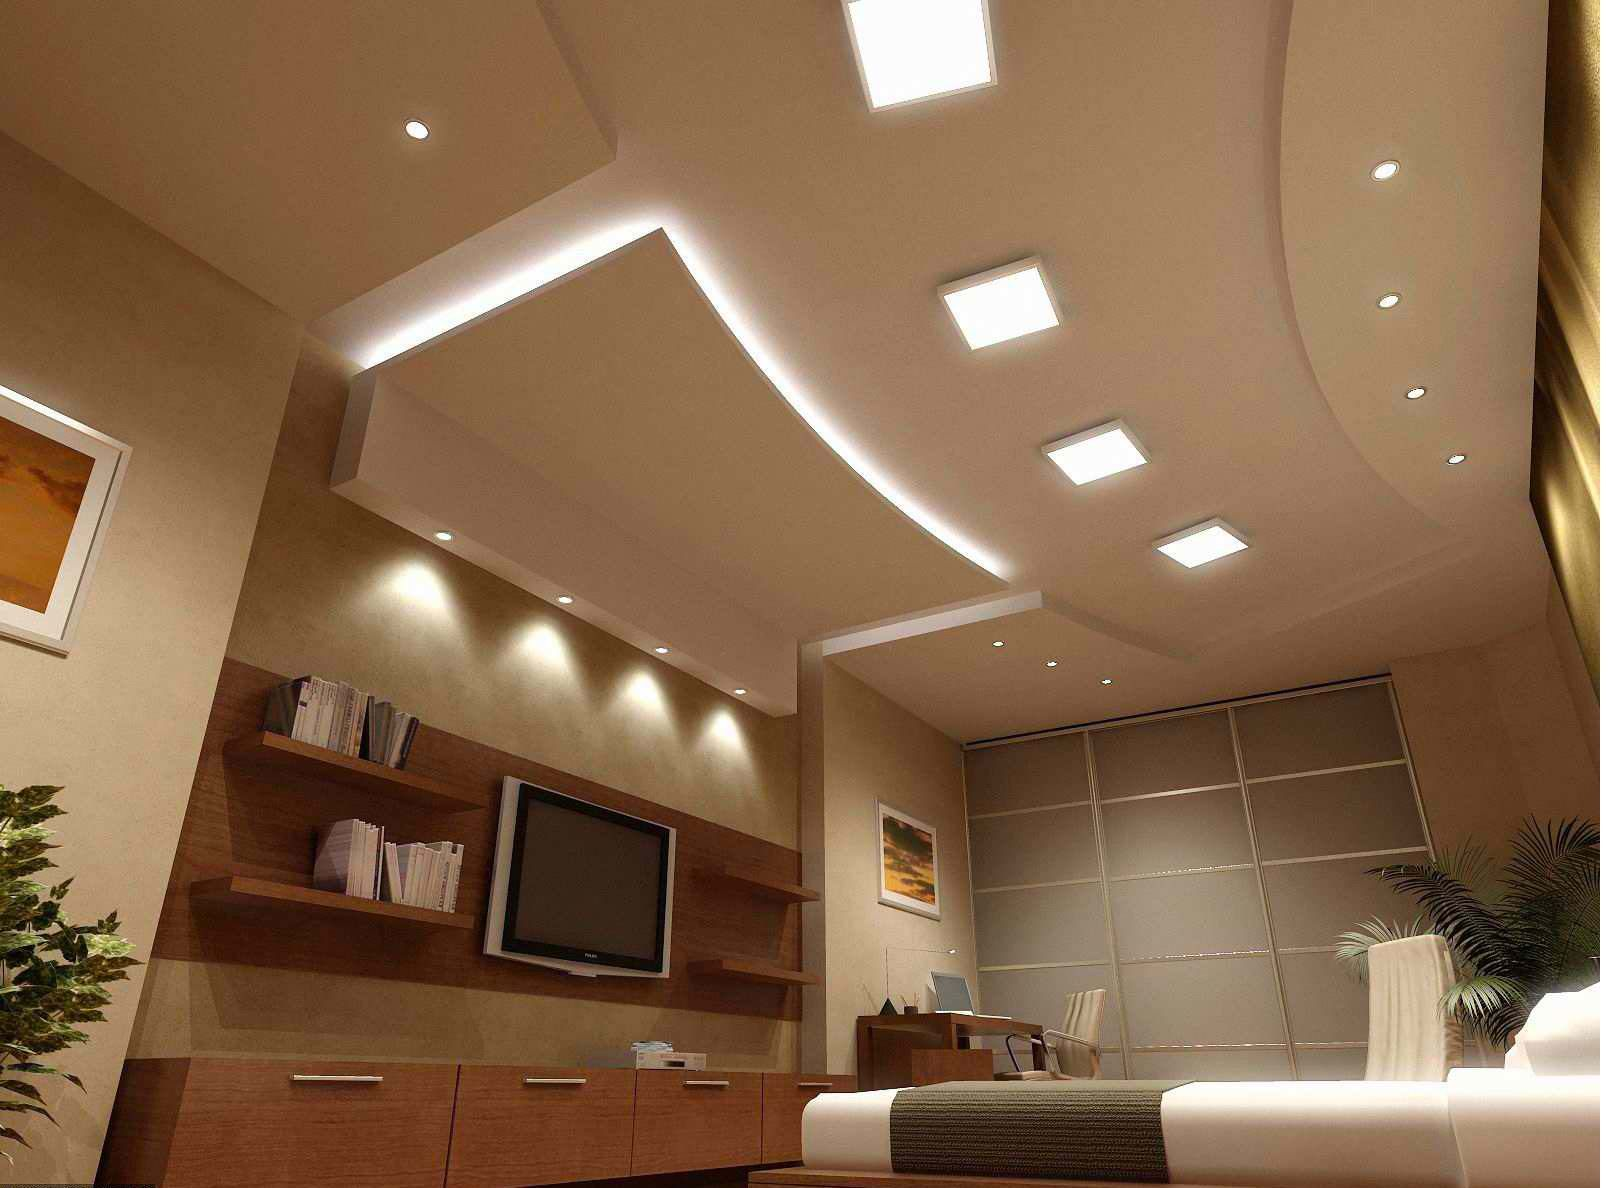 Ceiling Designs  Home Designs #kbhomes  Ceiling Ideas Beauteous Ceiling Pop Design For Living Room 2018